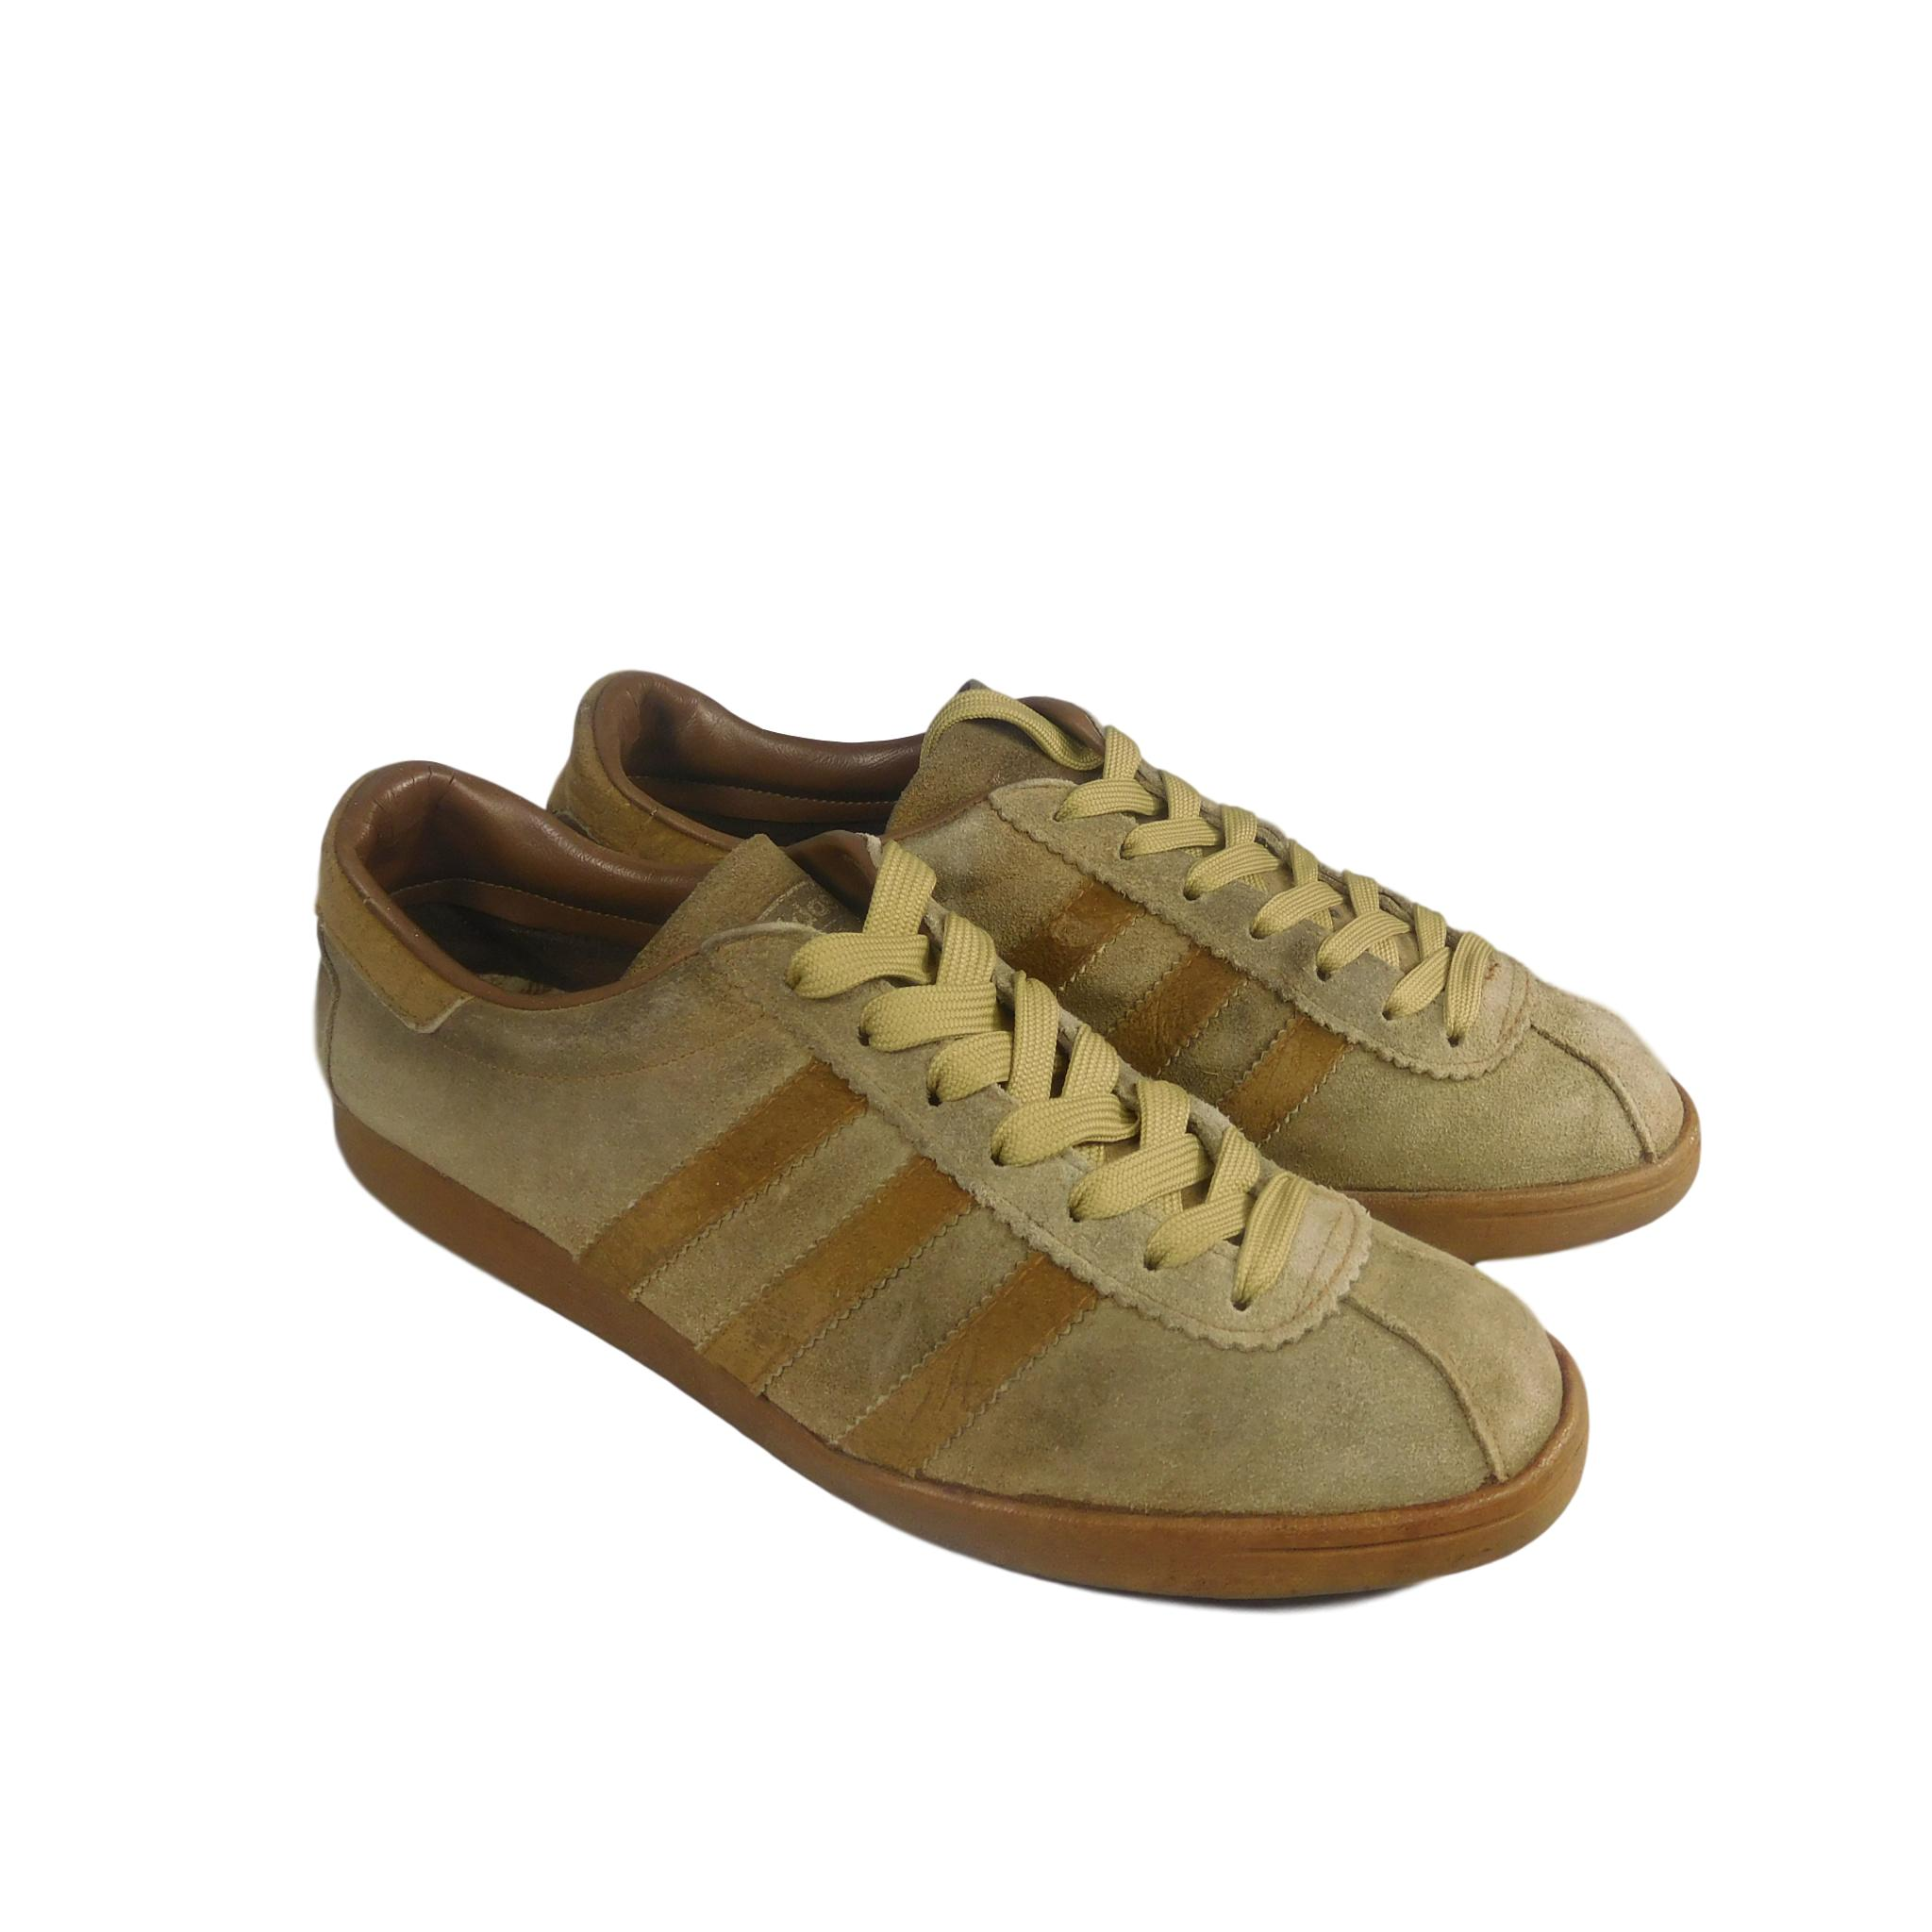 competitive price huge selection of outlet store adidas Tobacco - Made in France